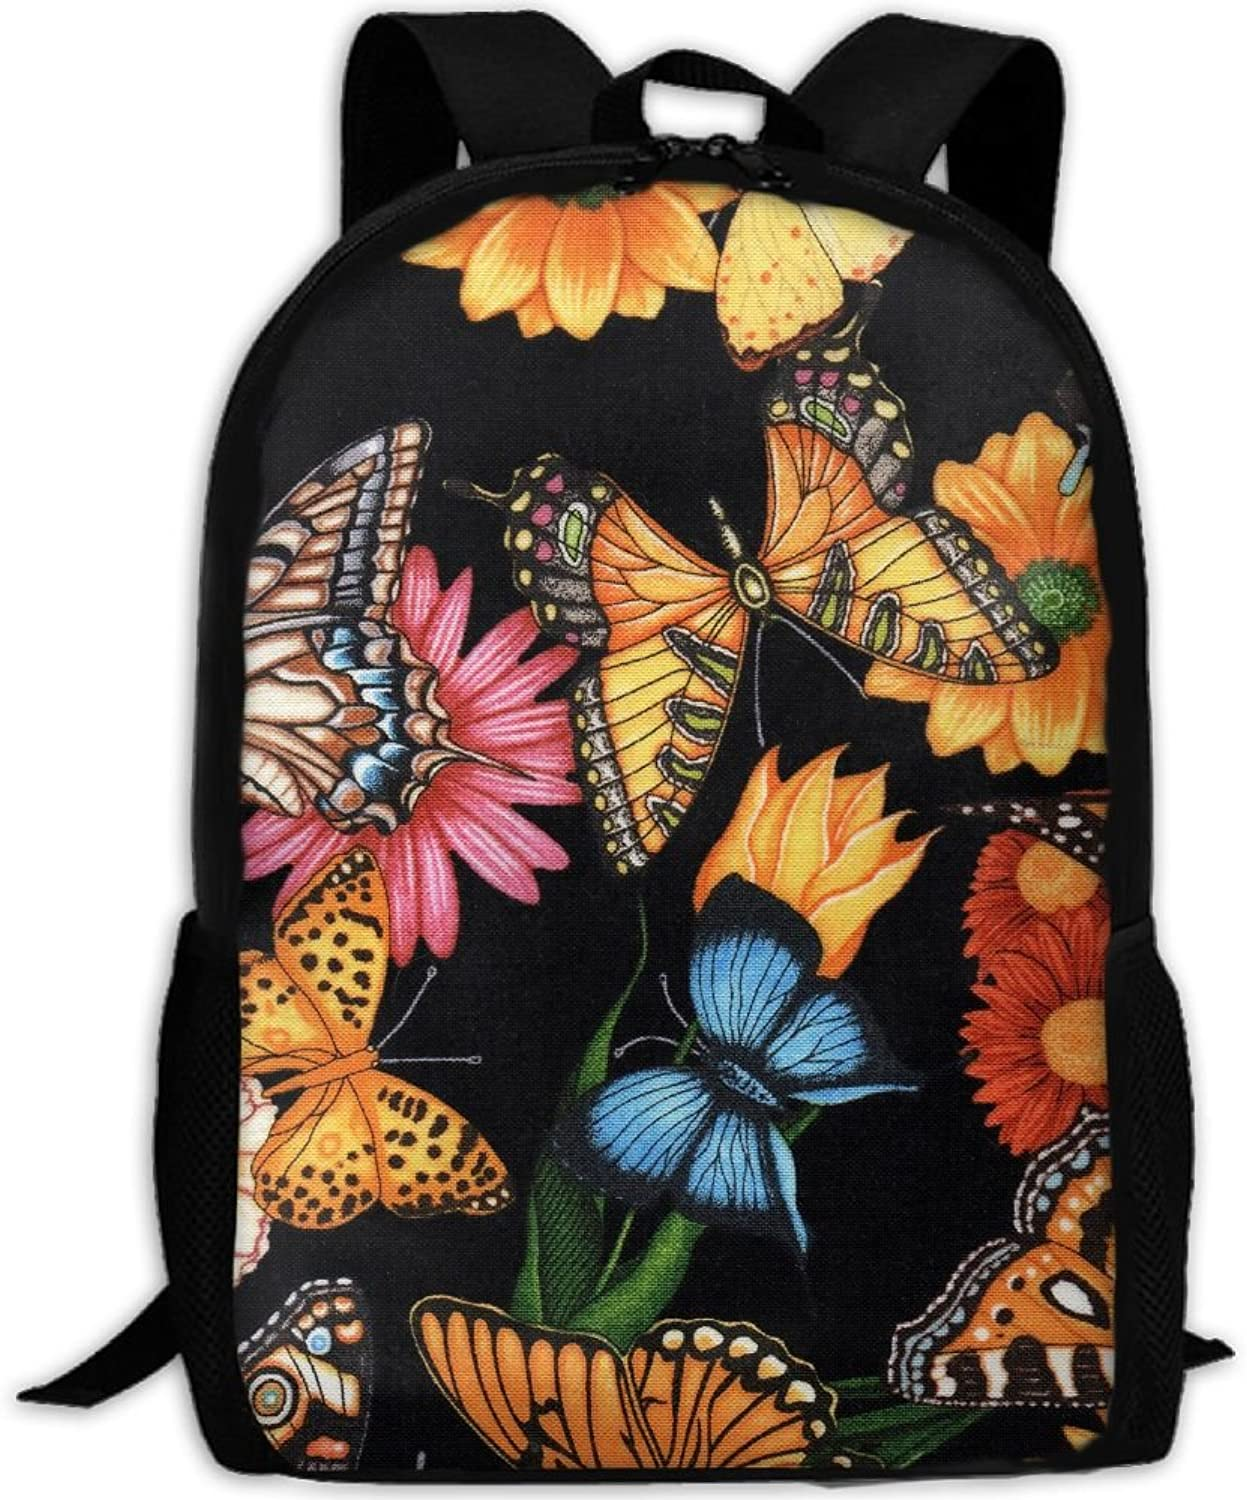 Butterfly And Flower Adult Backpack College Daypack Oxford Bag Unisex Business Travel Sports Bag